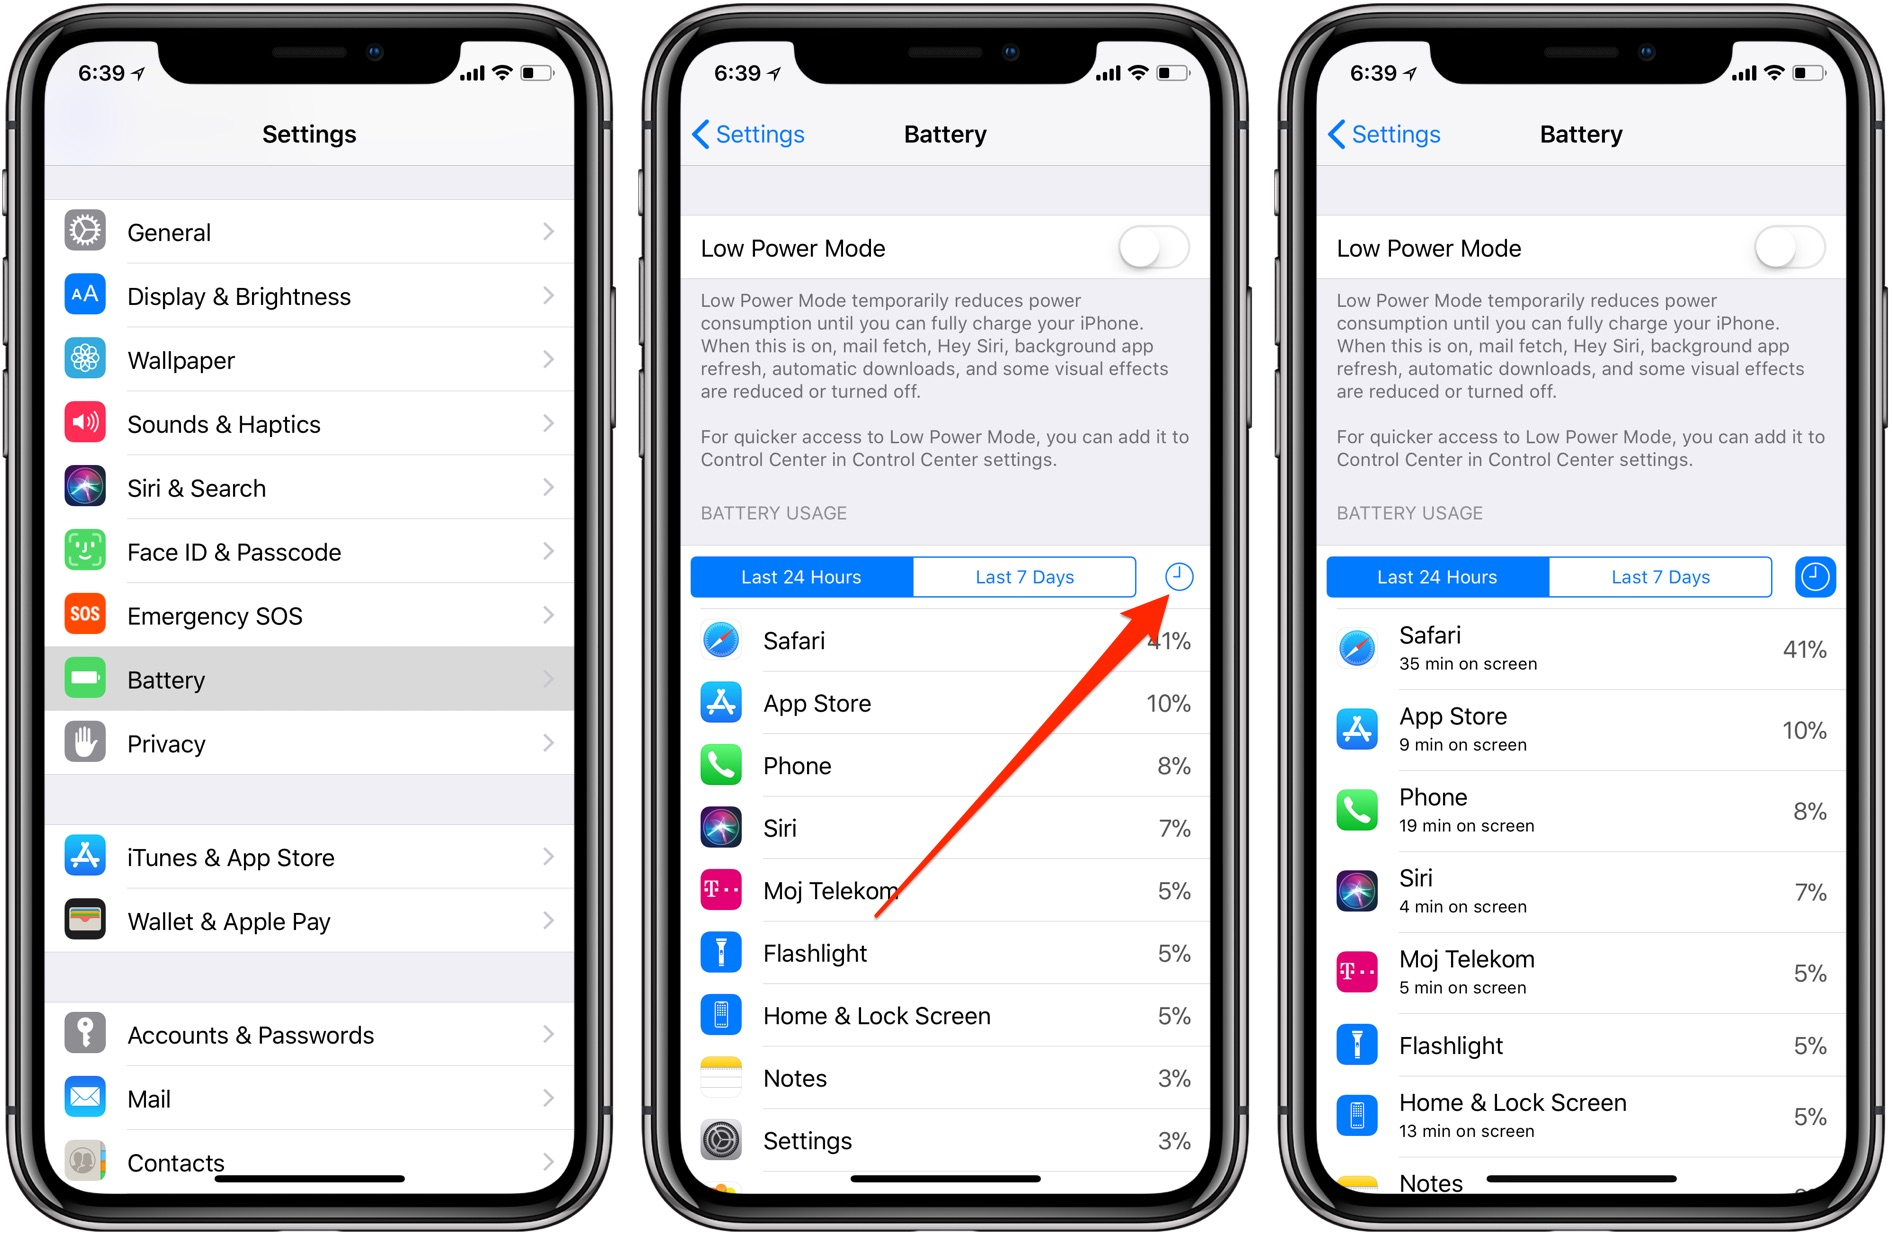 How Can I Know How Much Time I Spend in iOS Apps?